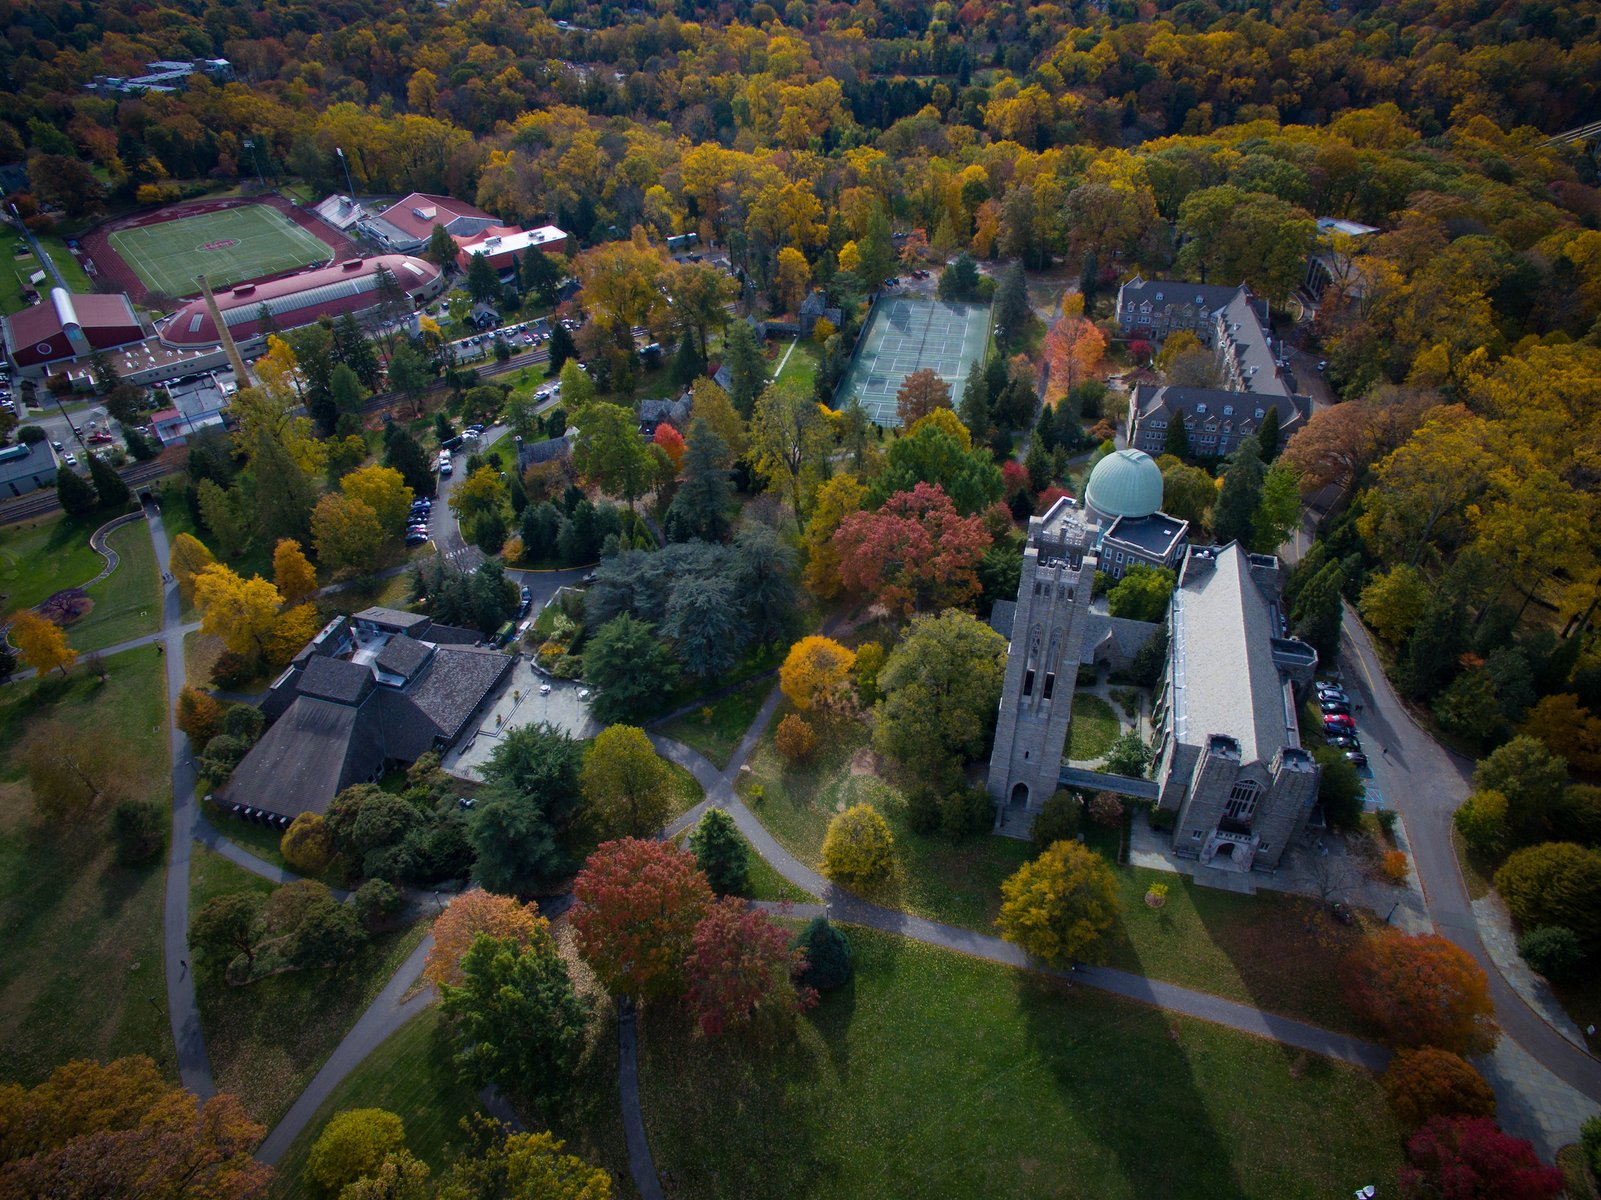 birds eye view of Swarthmore campus buildings